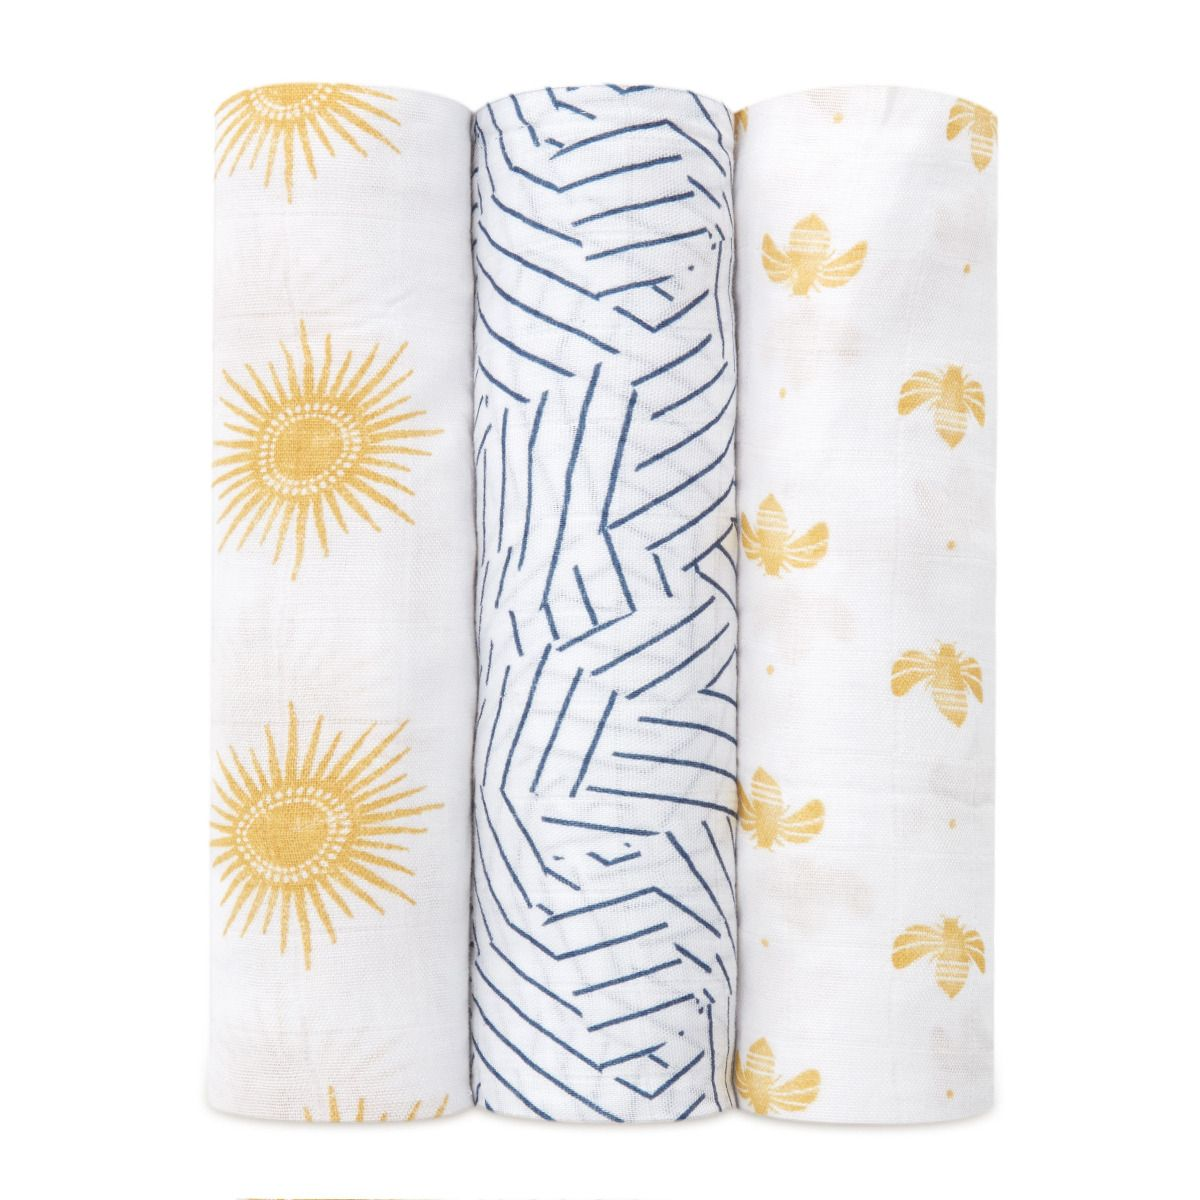 Silky Soft Swaddle 3-Pack